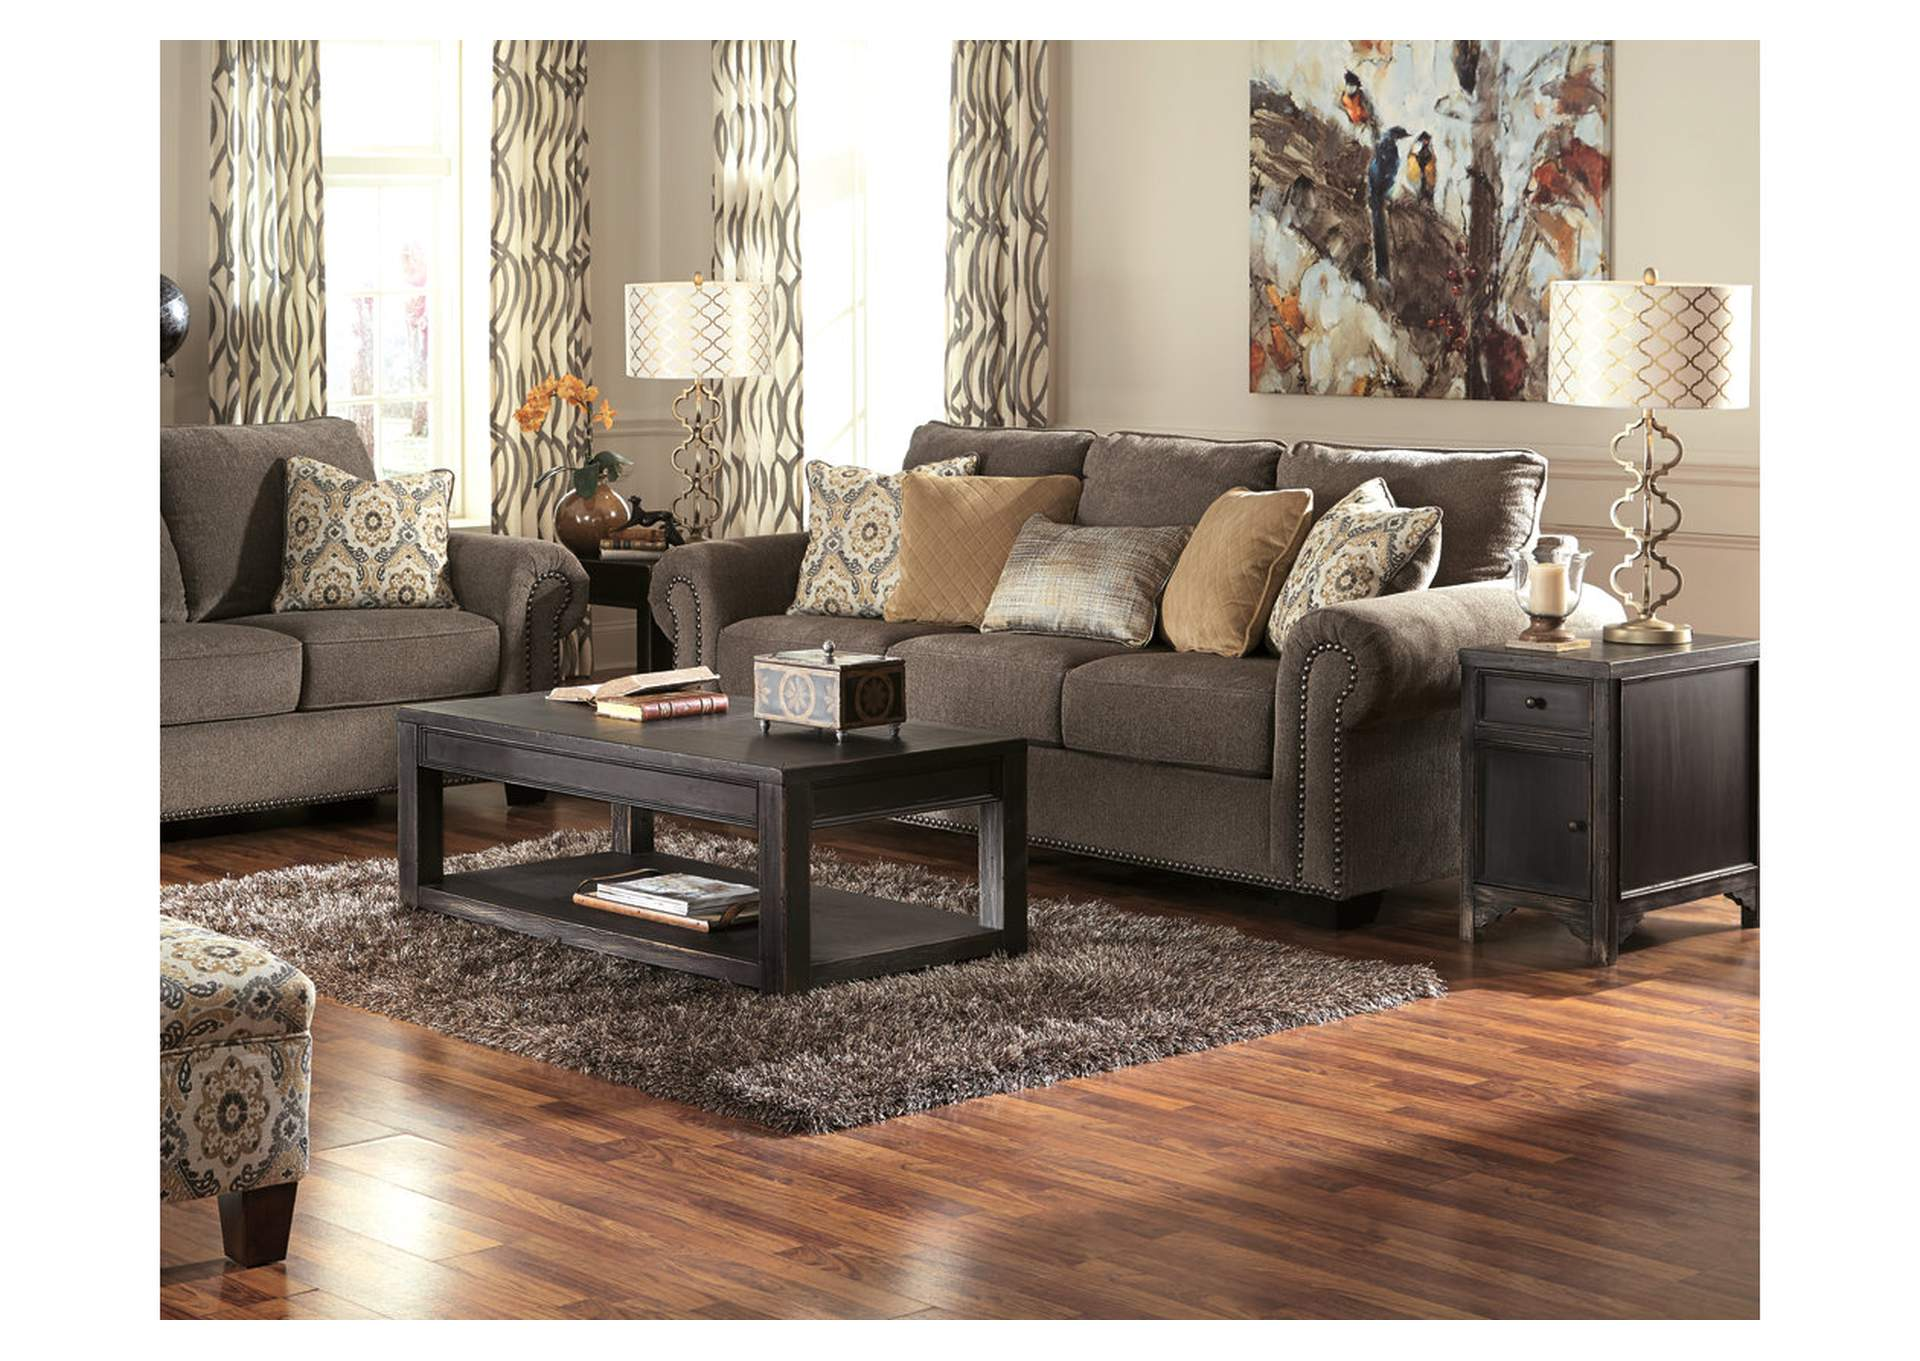 Gavelston Black Coffee Table,Direct To Consumer Express